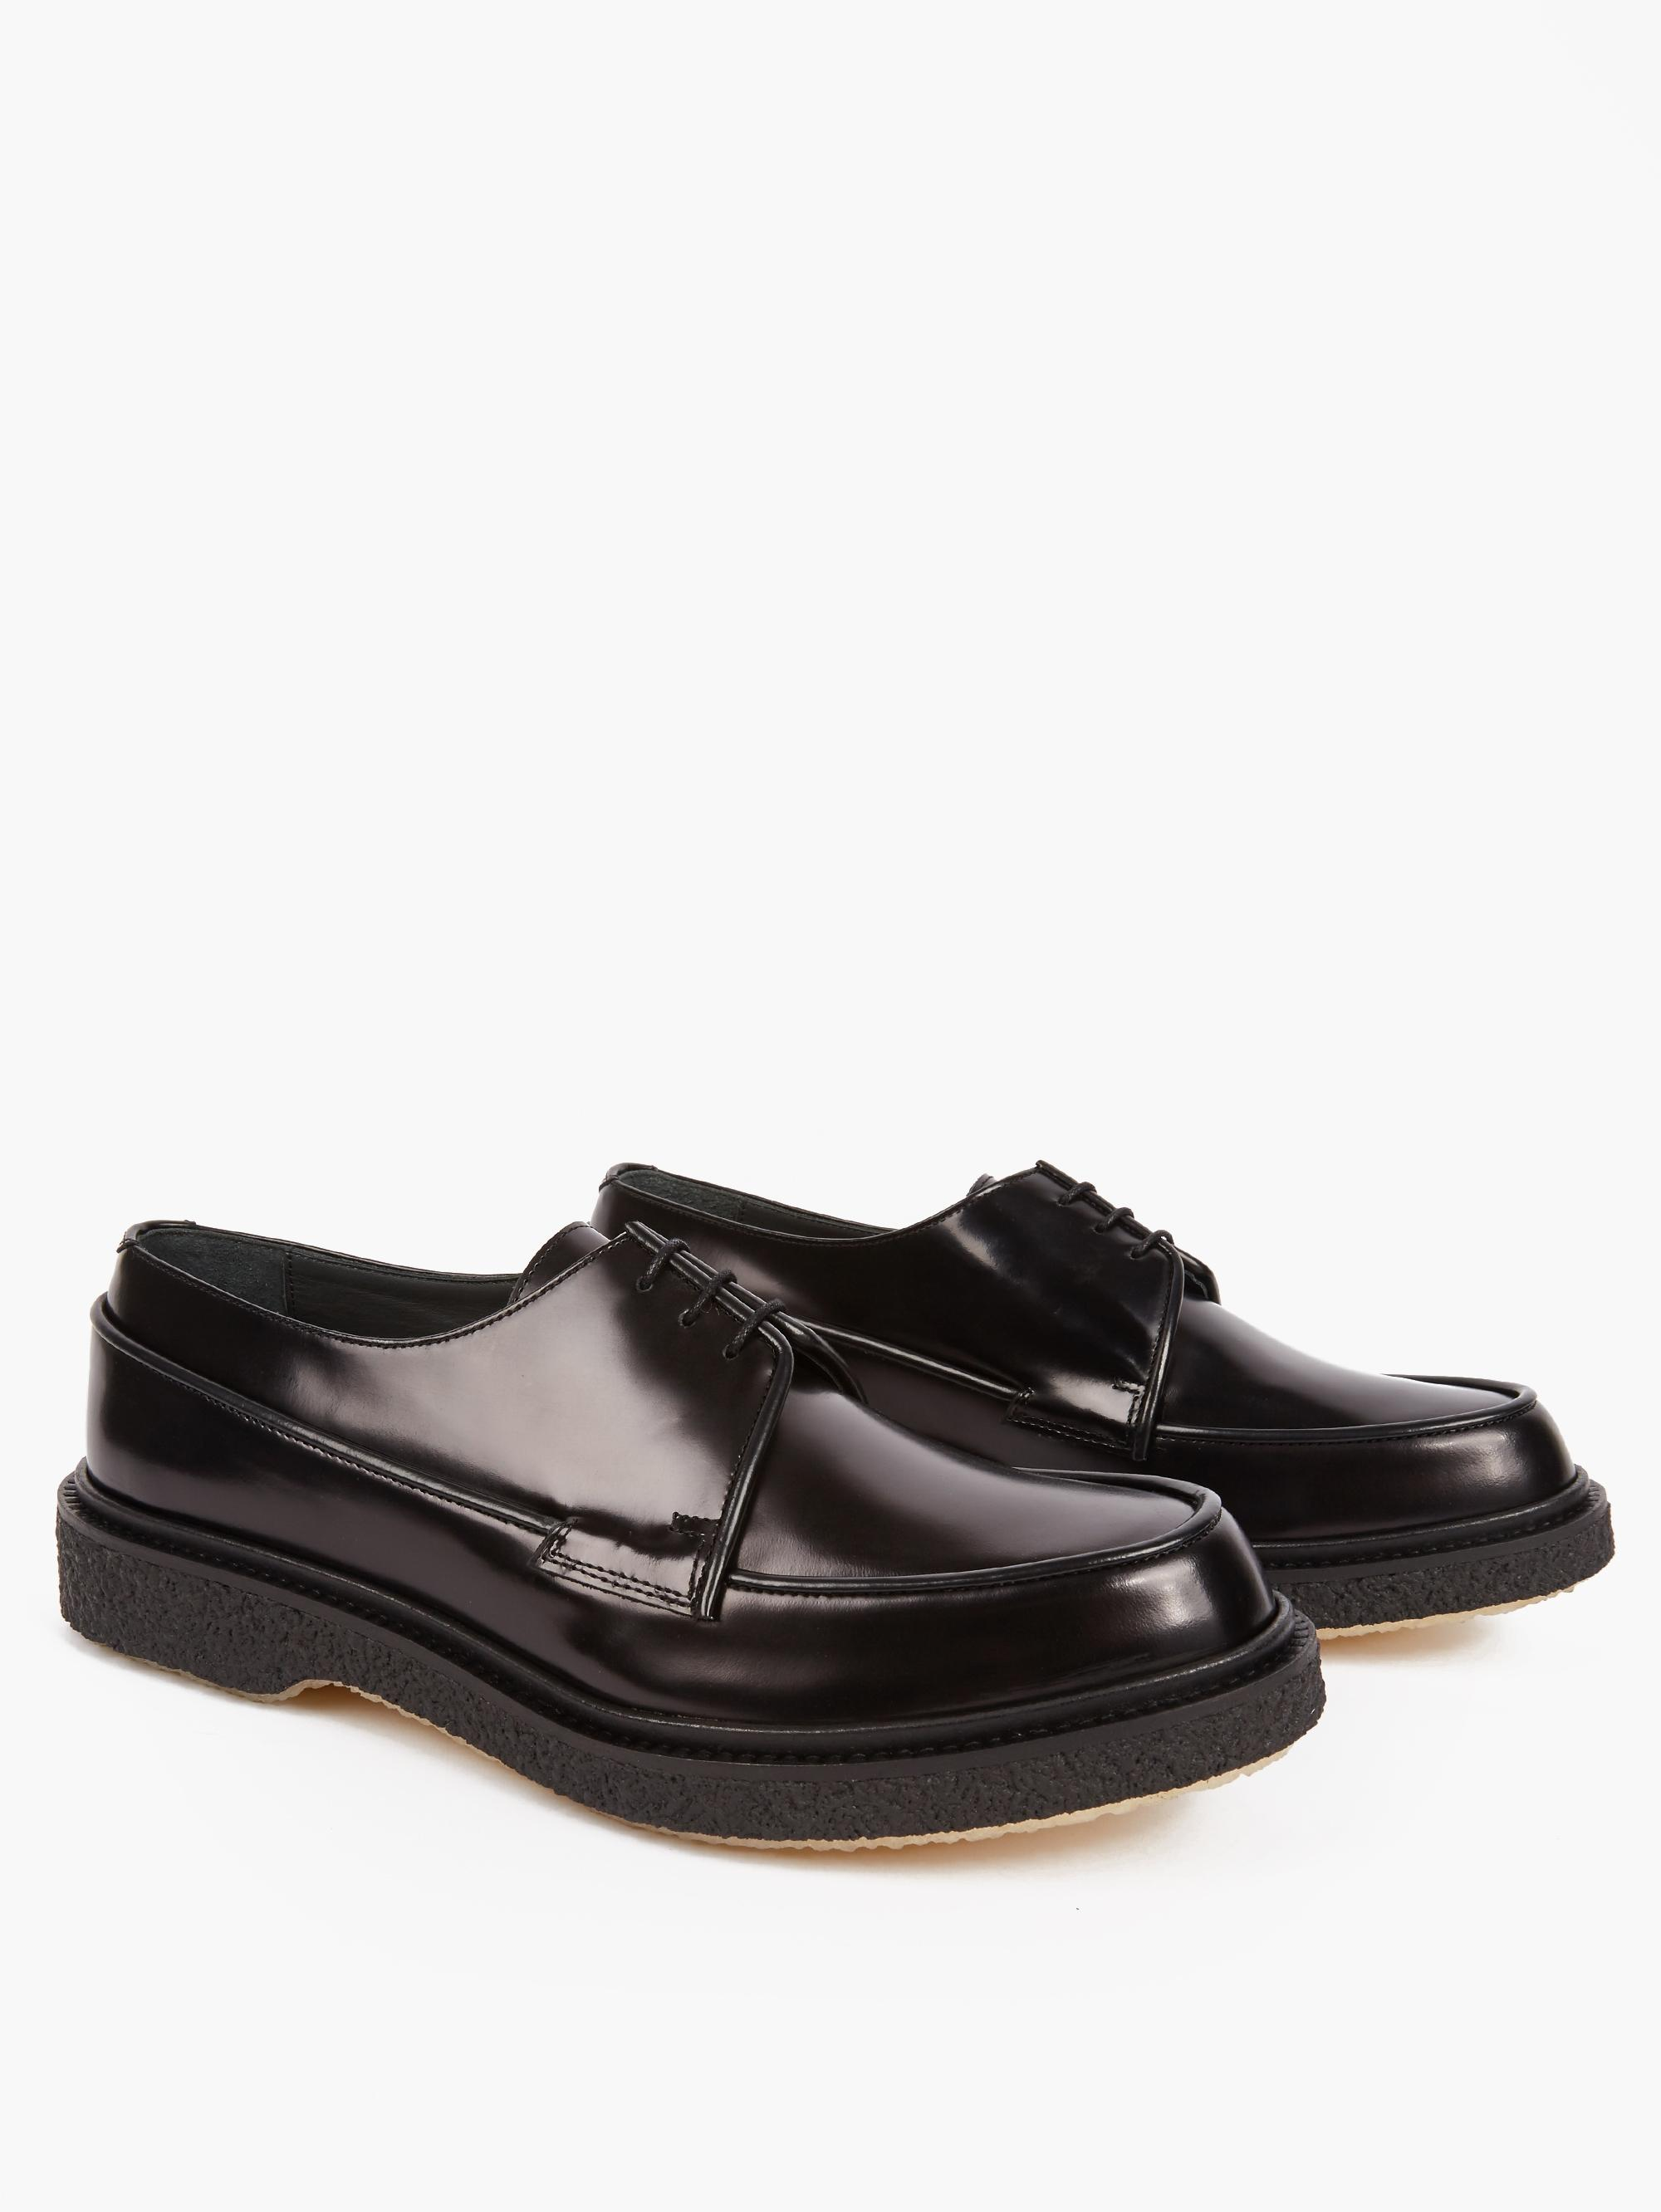 adieu black leather type 48 shoes in black for lyst